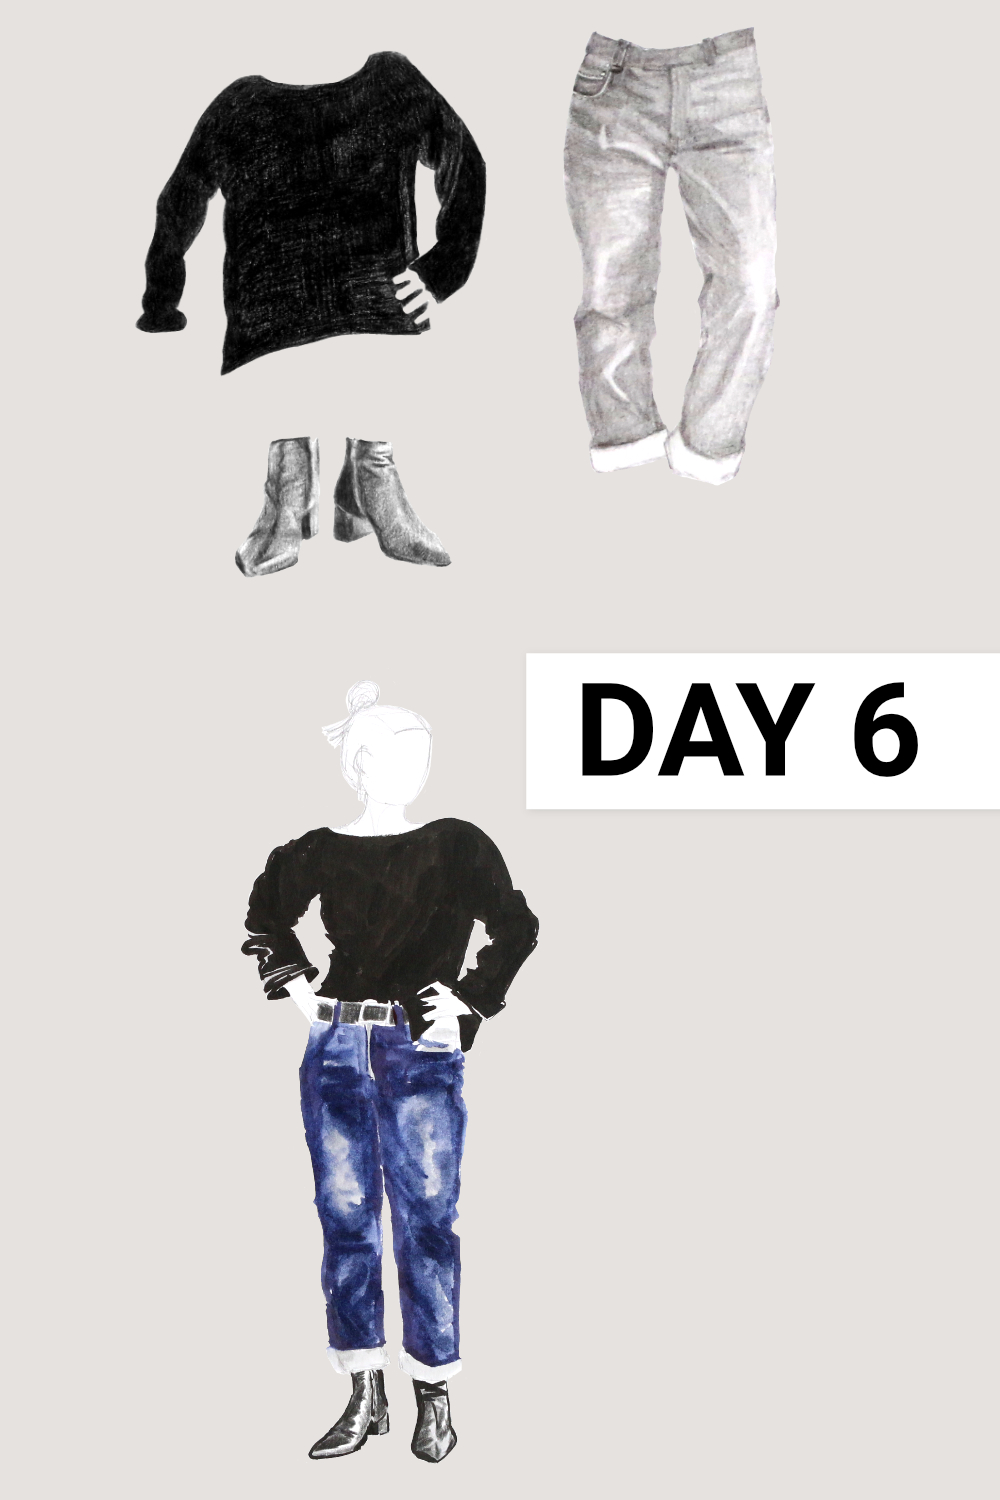 Day 6: Black boatneck ( Everlane , Black Cashmere Rib Boatneck, size M), blue jeans ( Everlane , The Cheeky Straight Jean, size 31), black boots ( Everlane , The Boss Boot)    Drawing a Capsule Wardrobe , by The Daily Atelier #10x10Friends #Winter10x10 #StyleBee10x10